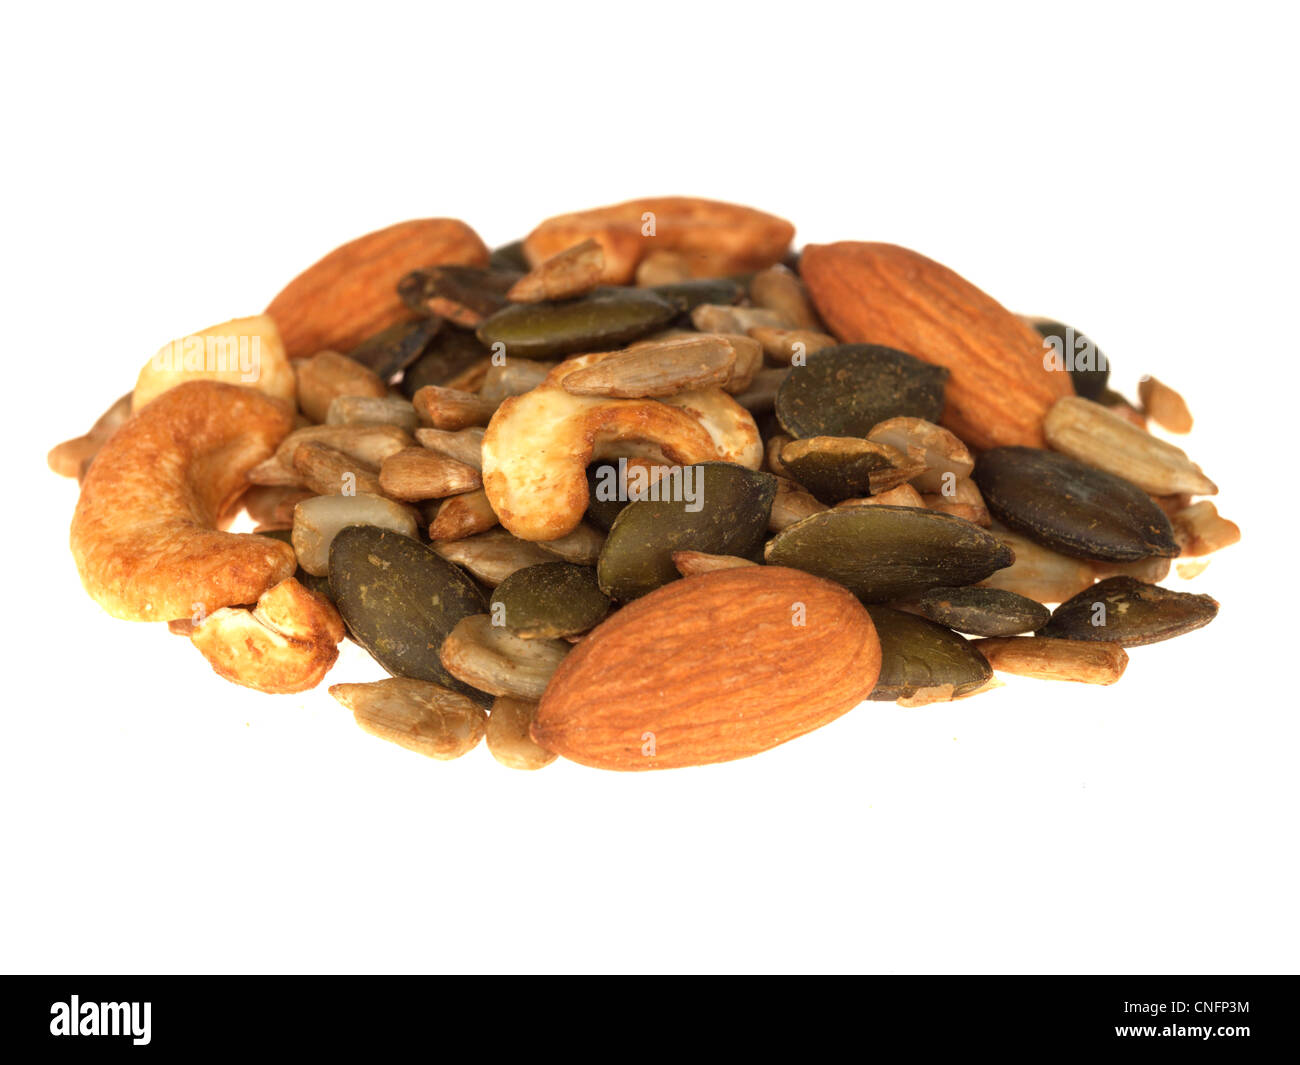 Seed and Nut Mix - Stock Image